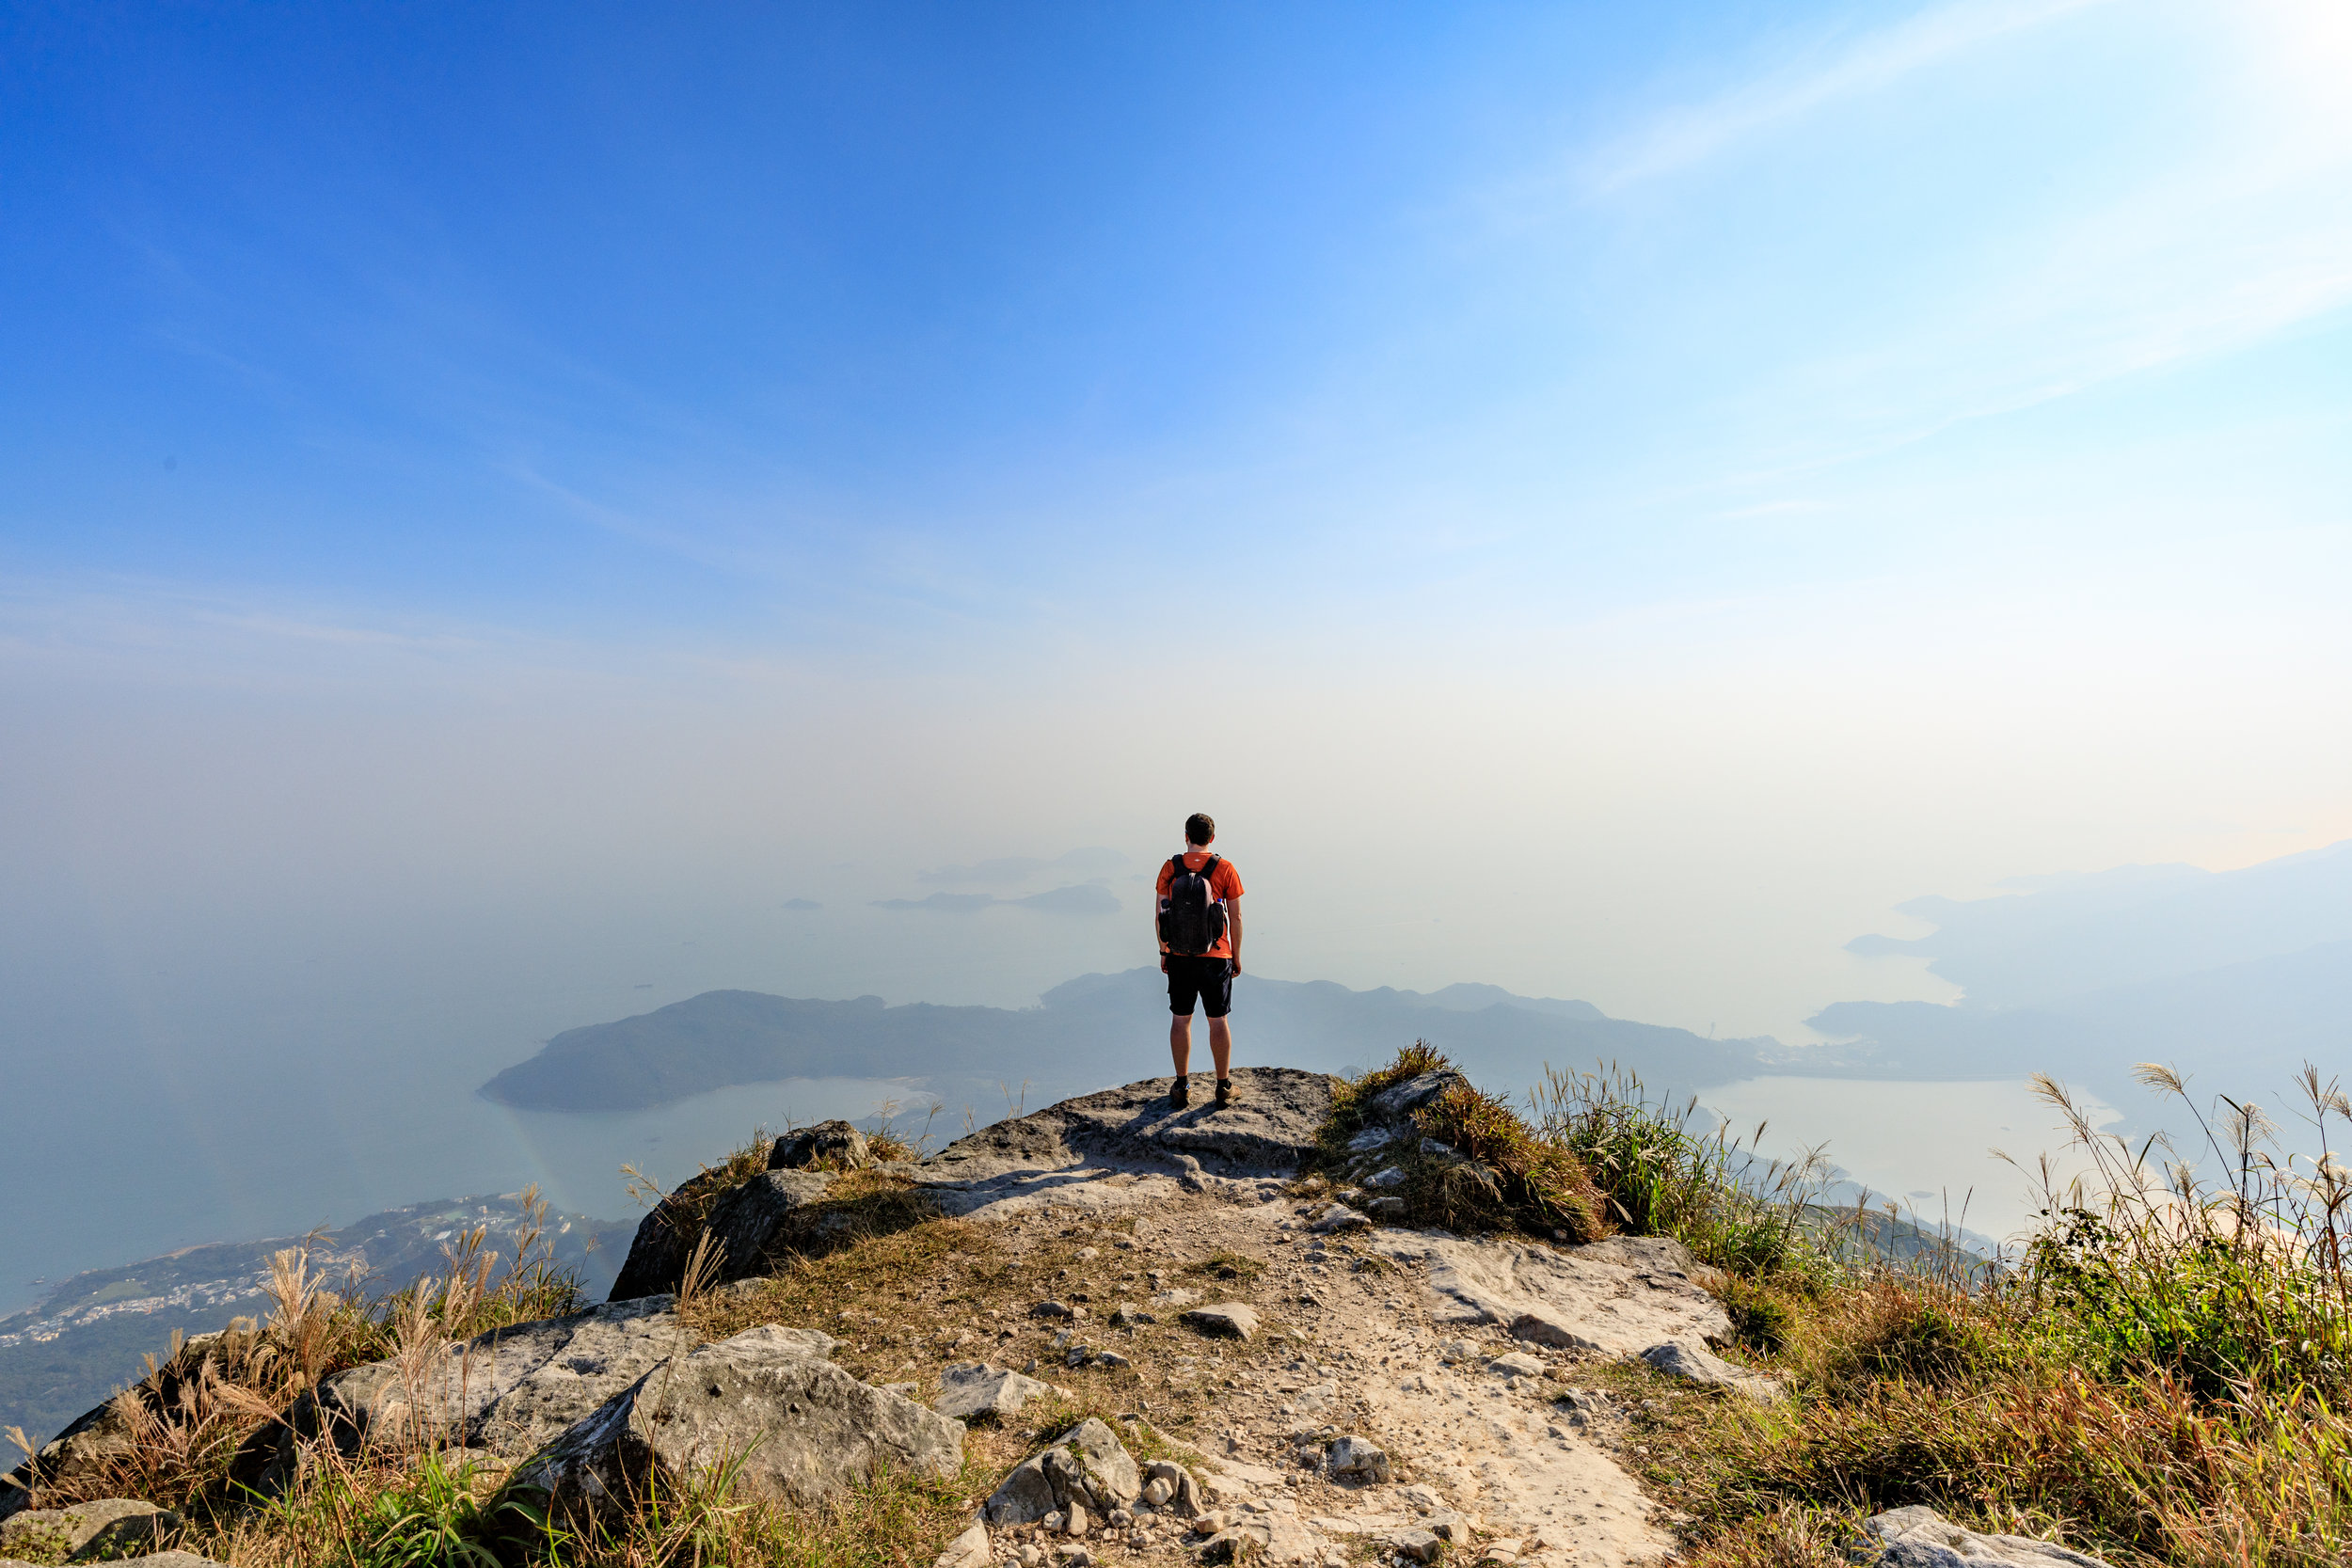 Instagrammable spots in Hong Kong: Lantau Peak, Hong Kong